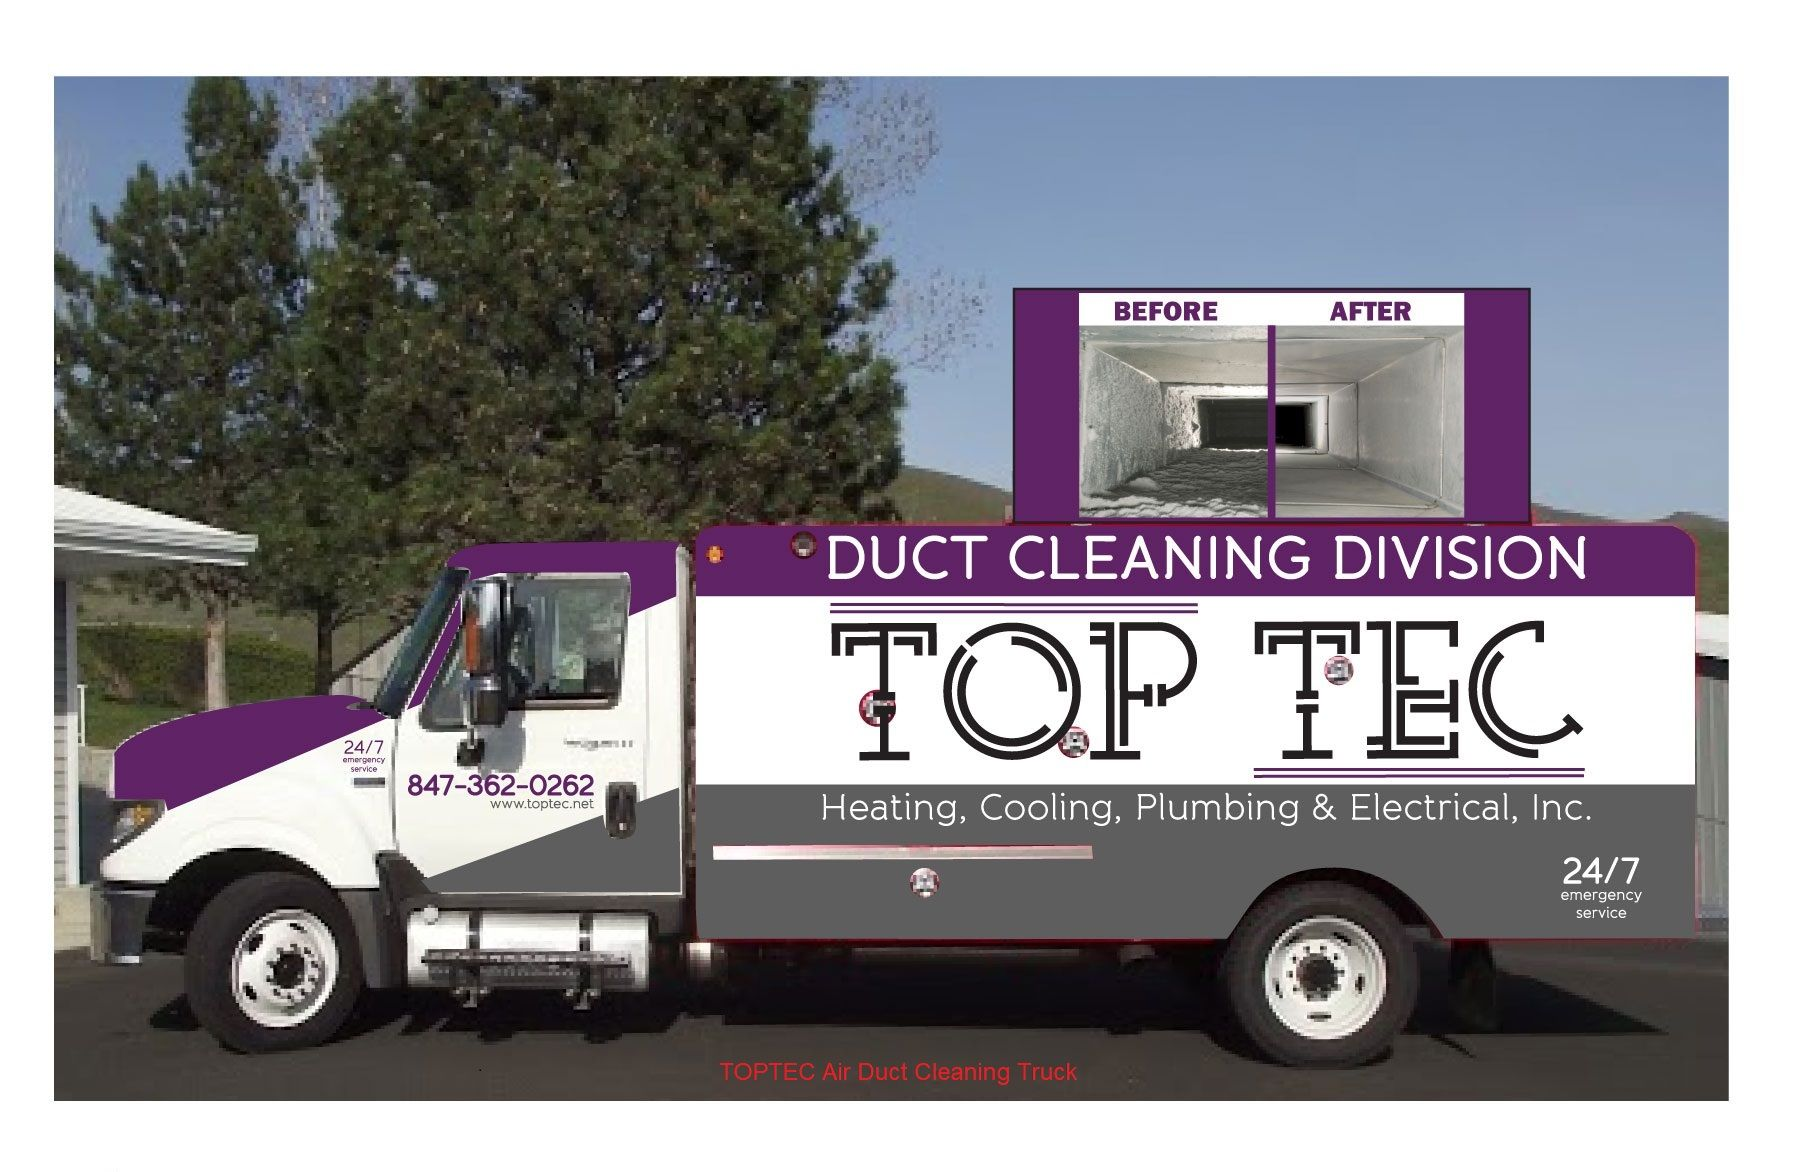 Toptec Offers A Comprehensive Air Duct And Vent Cleaning And